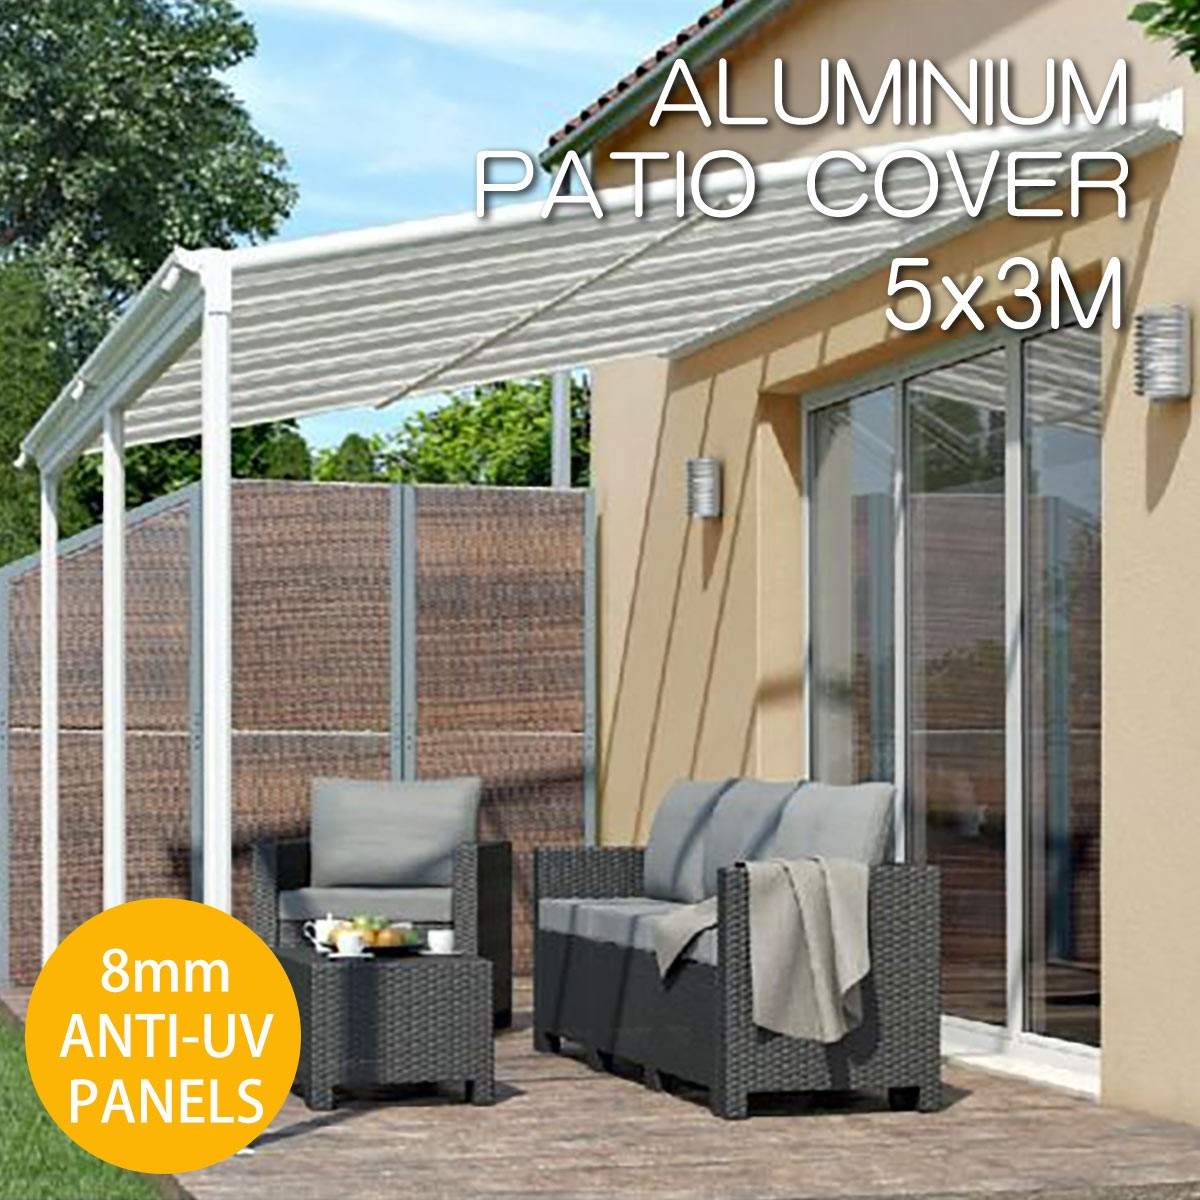 pergola kit aluminium outdoor patio deck cover 5 x 3m verandah wholesales direct. Black Bedroom Furniture Sets. Home Design Ideas